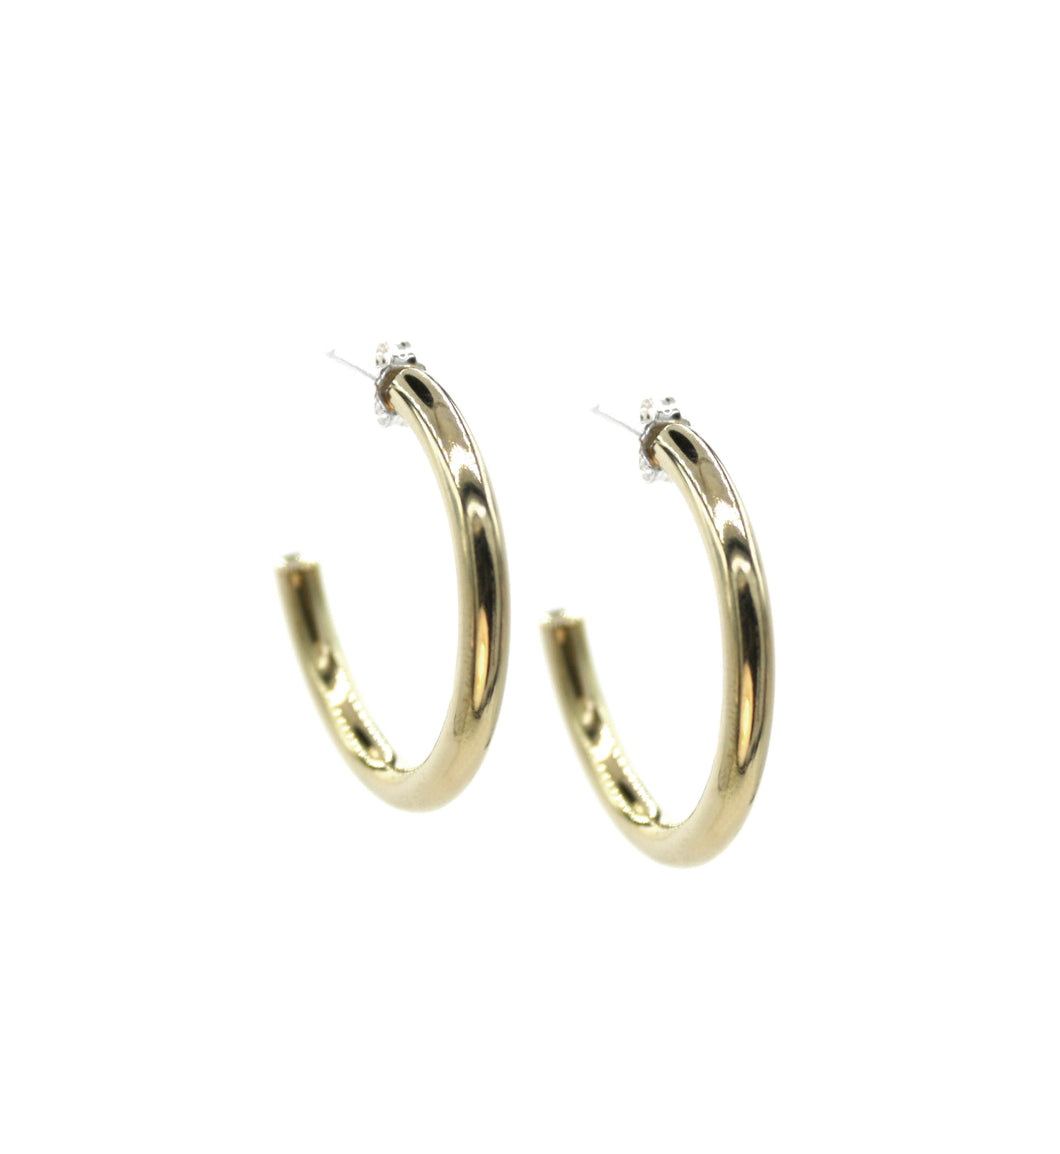 Sun God - Brass hoop stud earrings l A Bird Named Frank